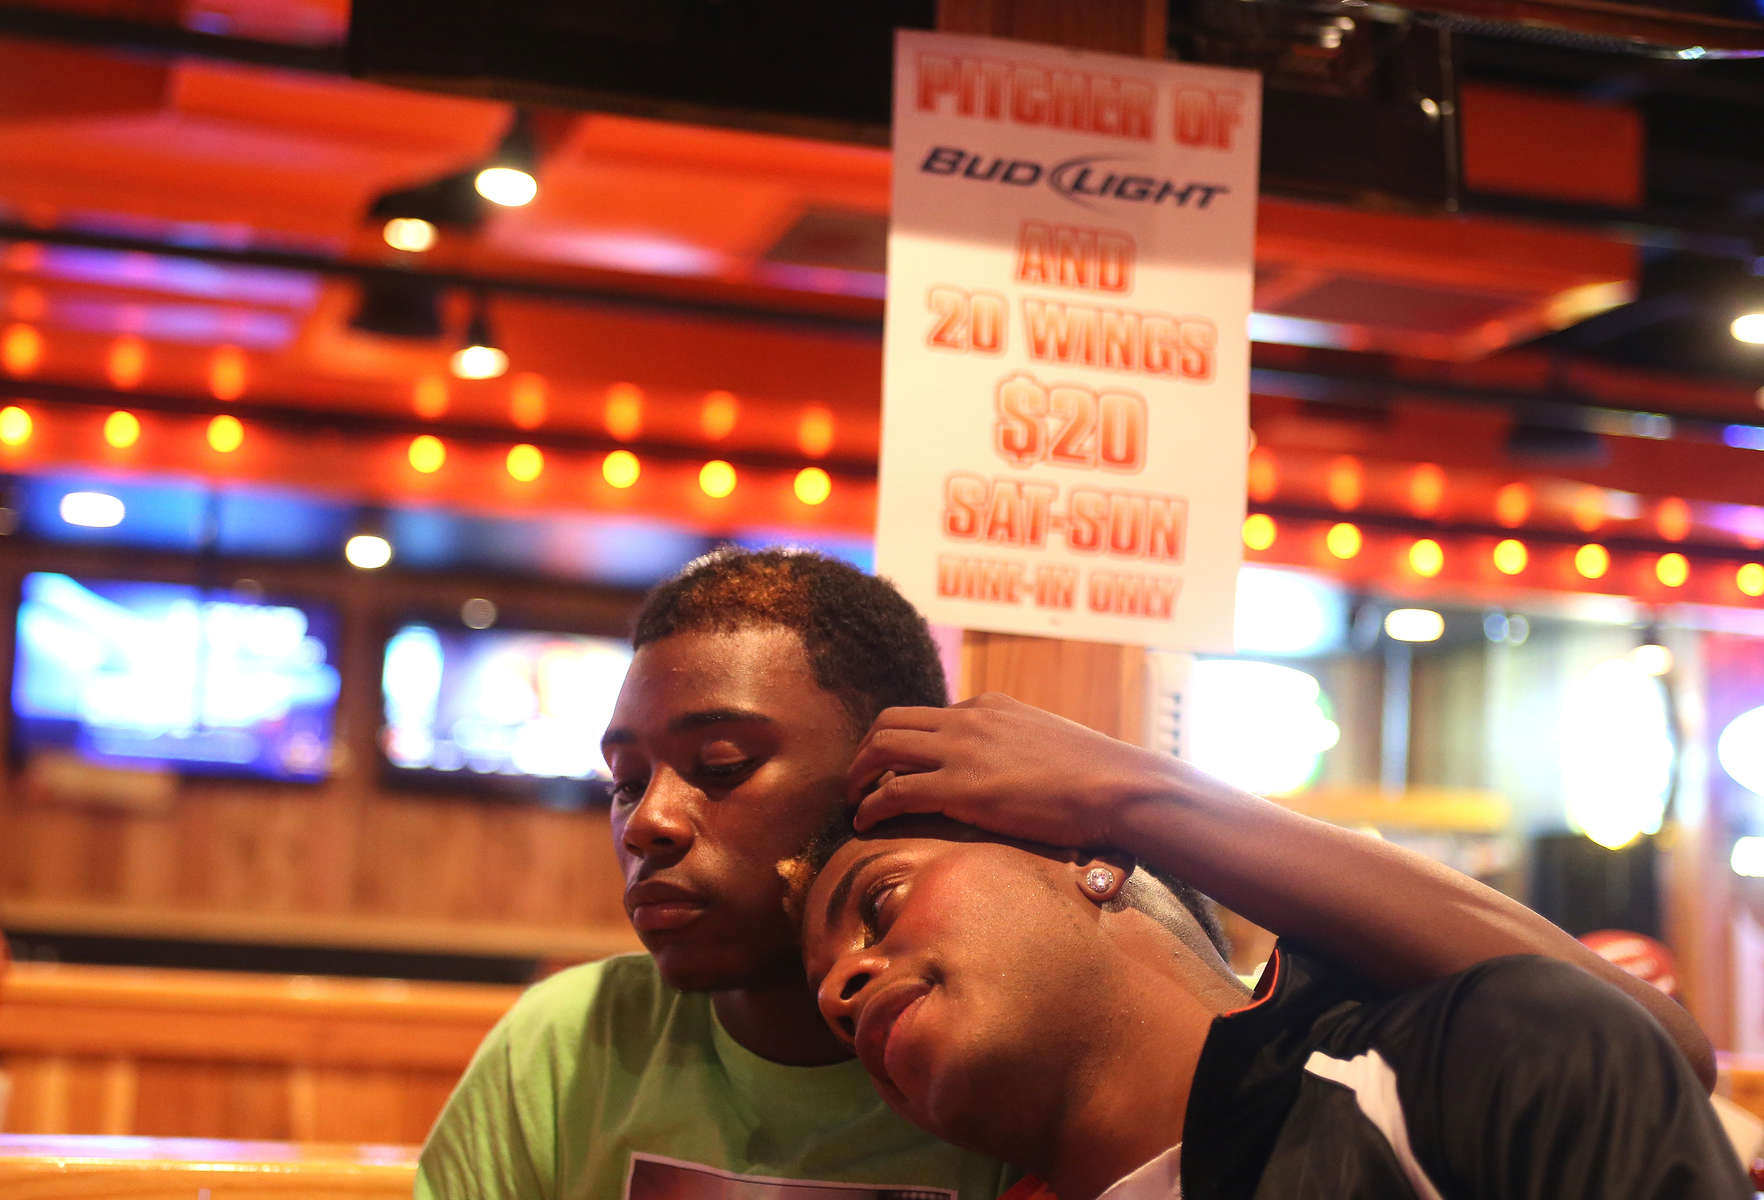 Kentrell Collins, right, the captain of the Prancing Elites, and his boyfriend Derek eat dinner in a Hooters restaurant in Hattiesburg, Miss. in November. The team was on their way back to Mobile after performing in the stands at Jackson State University in Jackson, Miss.